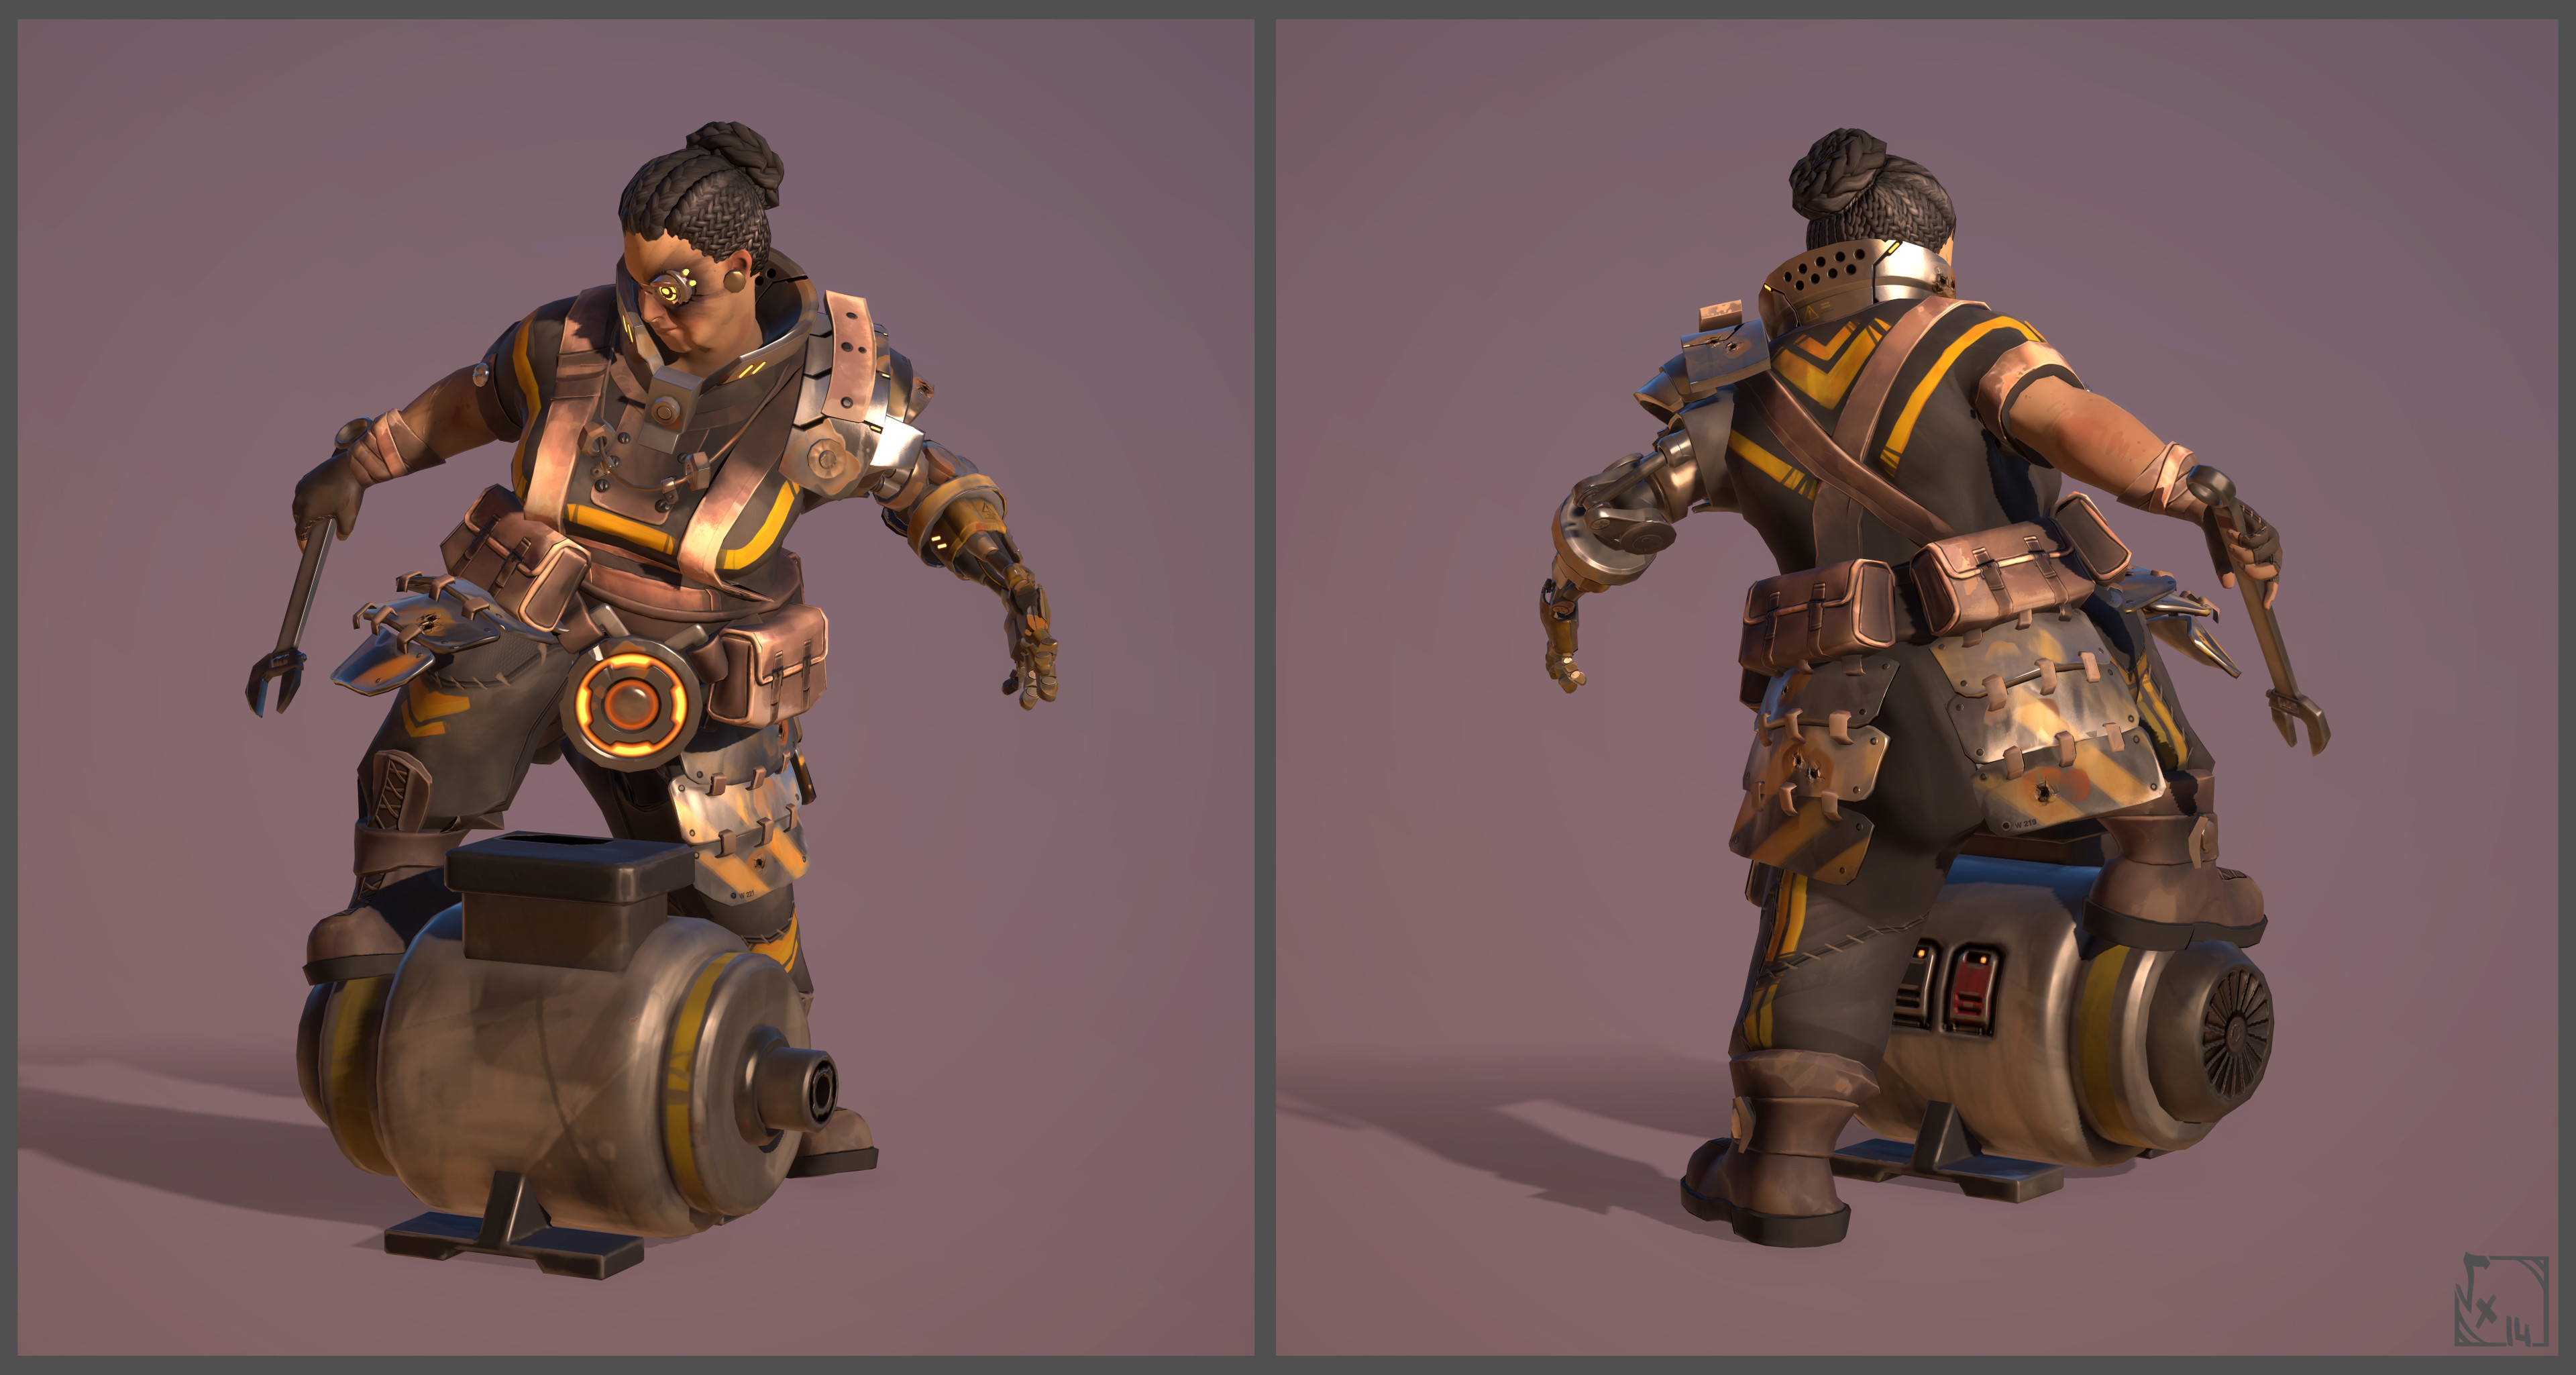 Klarell - Engineer - Made with Maya/ZBrush/xNormals/3DCoat/Akeytsu by Coralie Bruchon ( Sculpt/Lowpoly/Uvs/Bake ) & me ( Textures/Rig/Posing/Props )